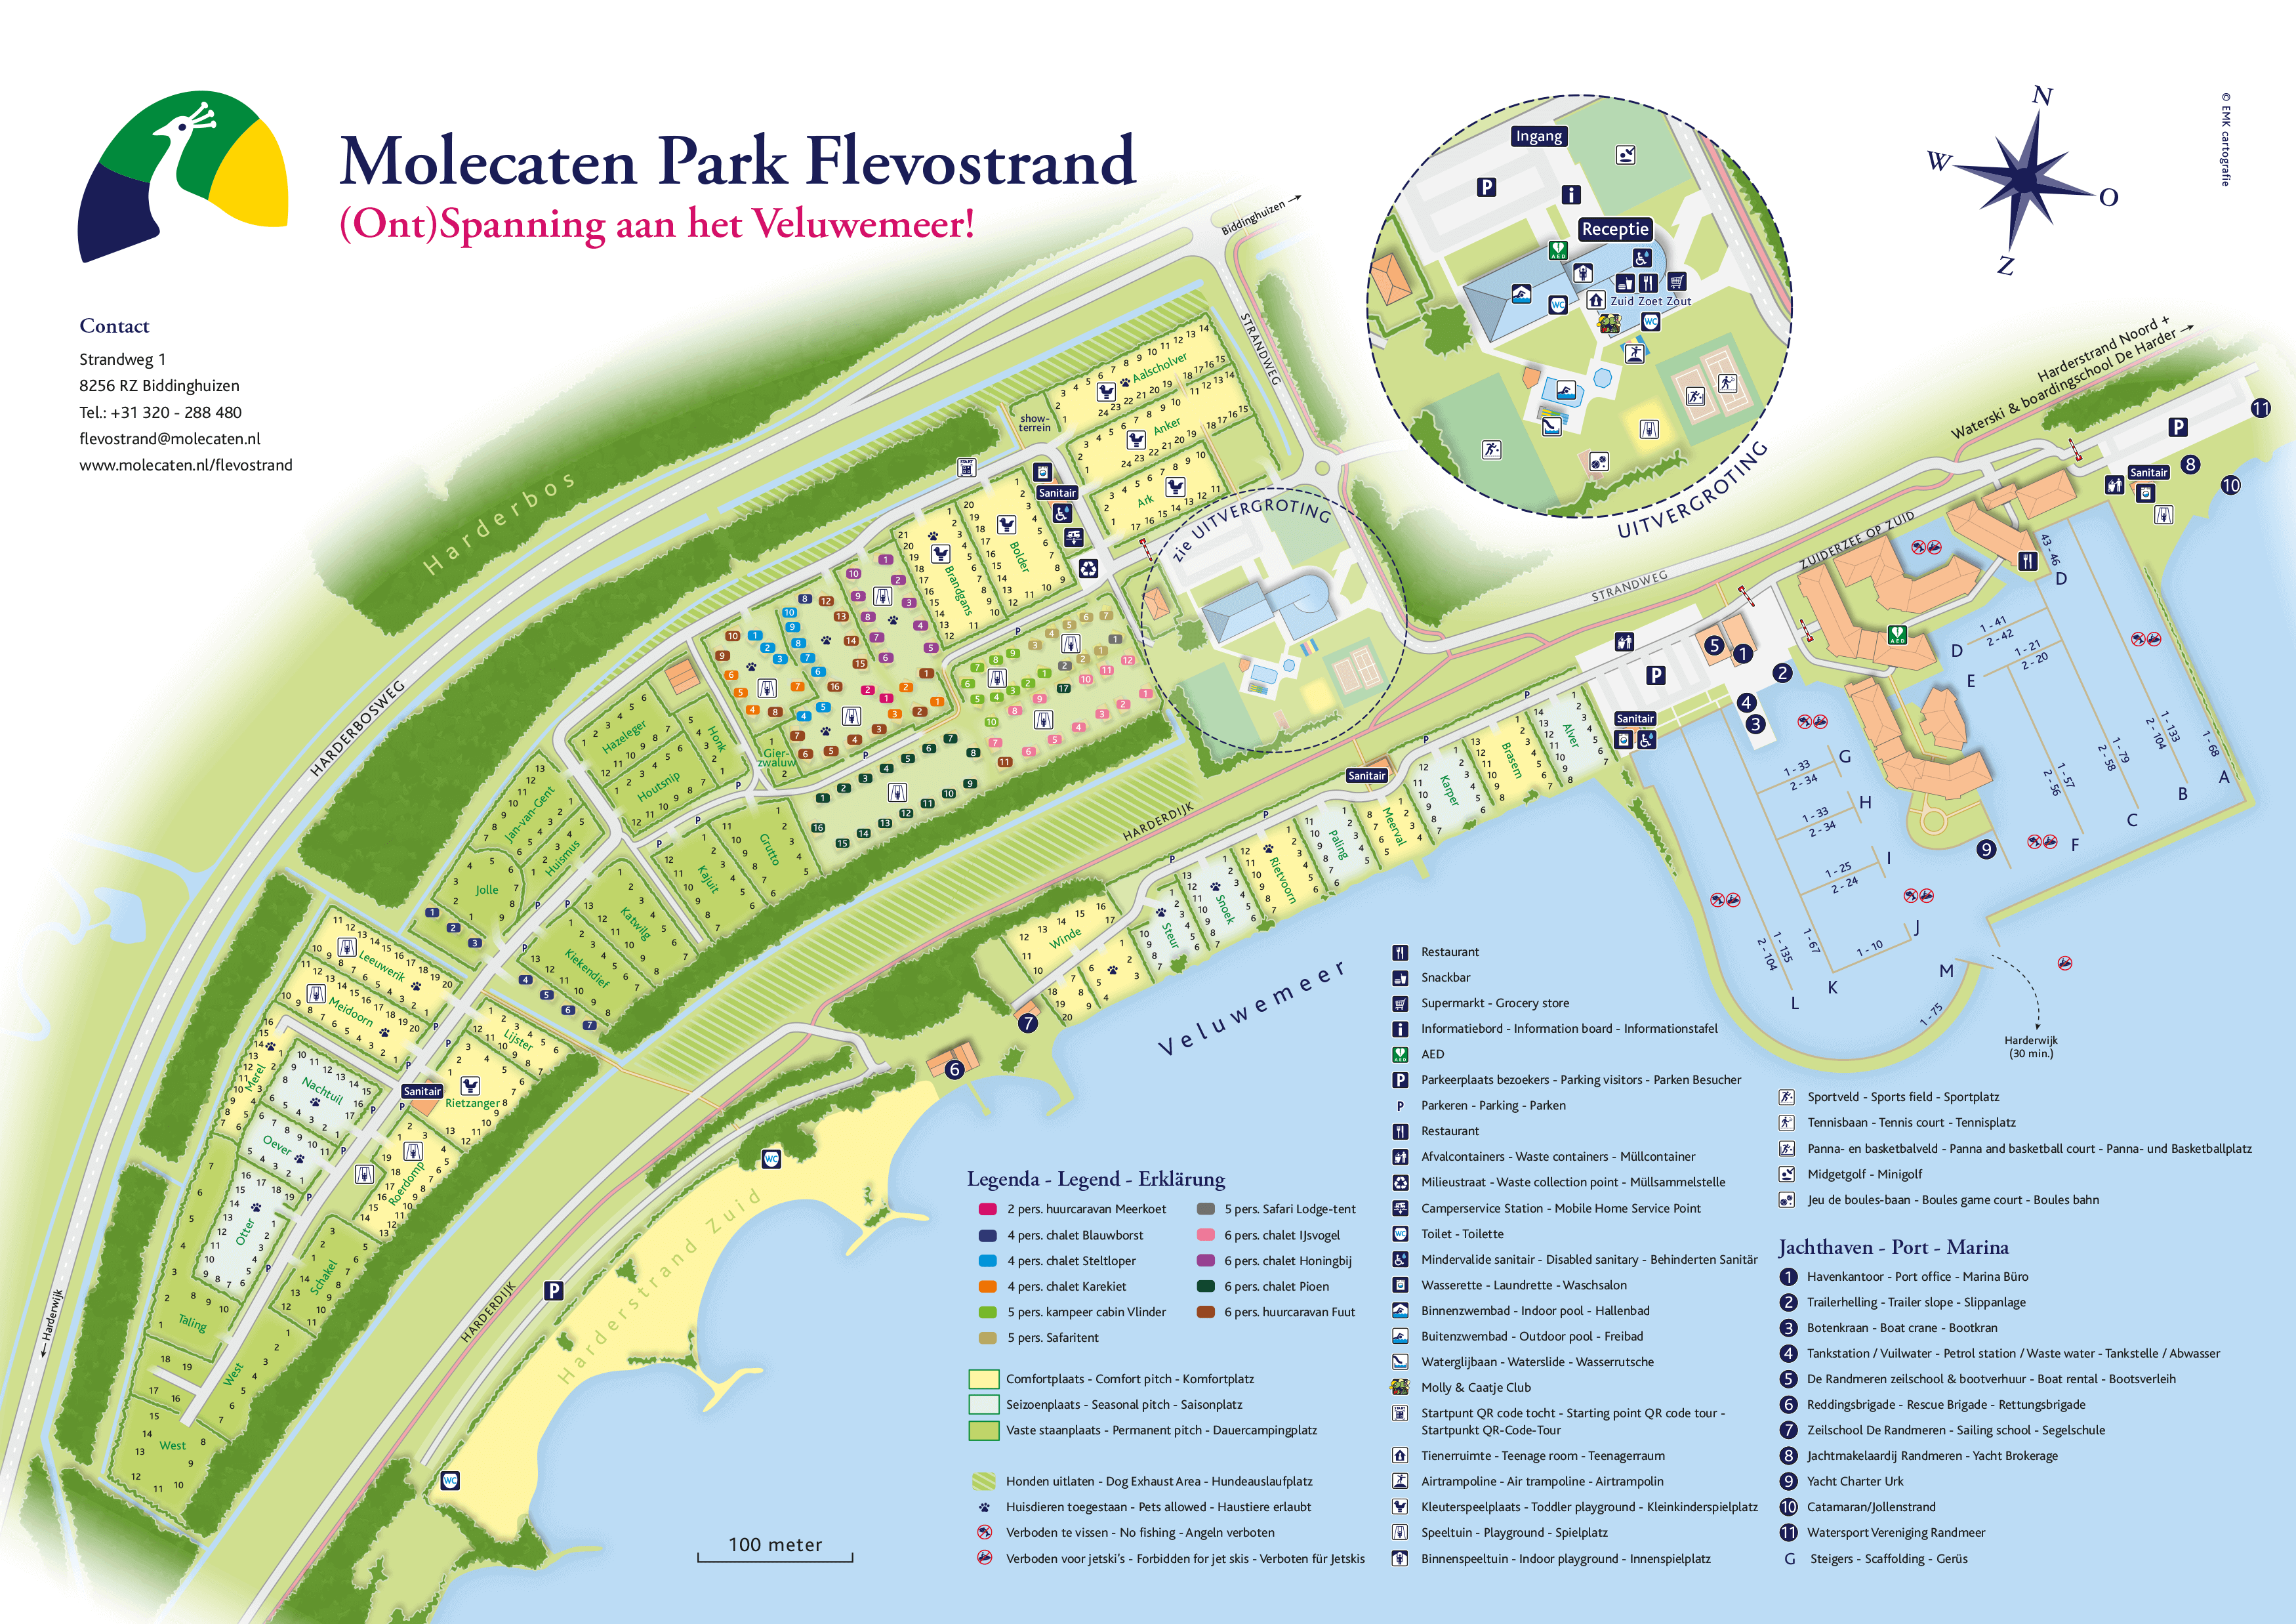 Molecaten Park Flevostrand accommodation.parkmap.alttext